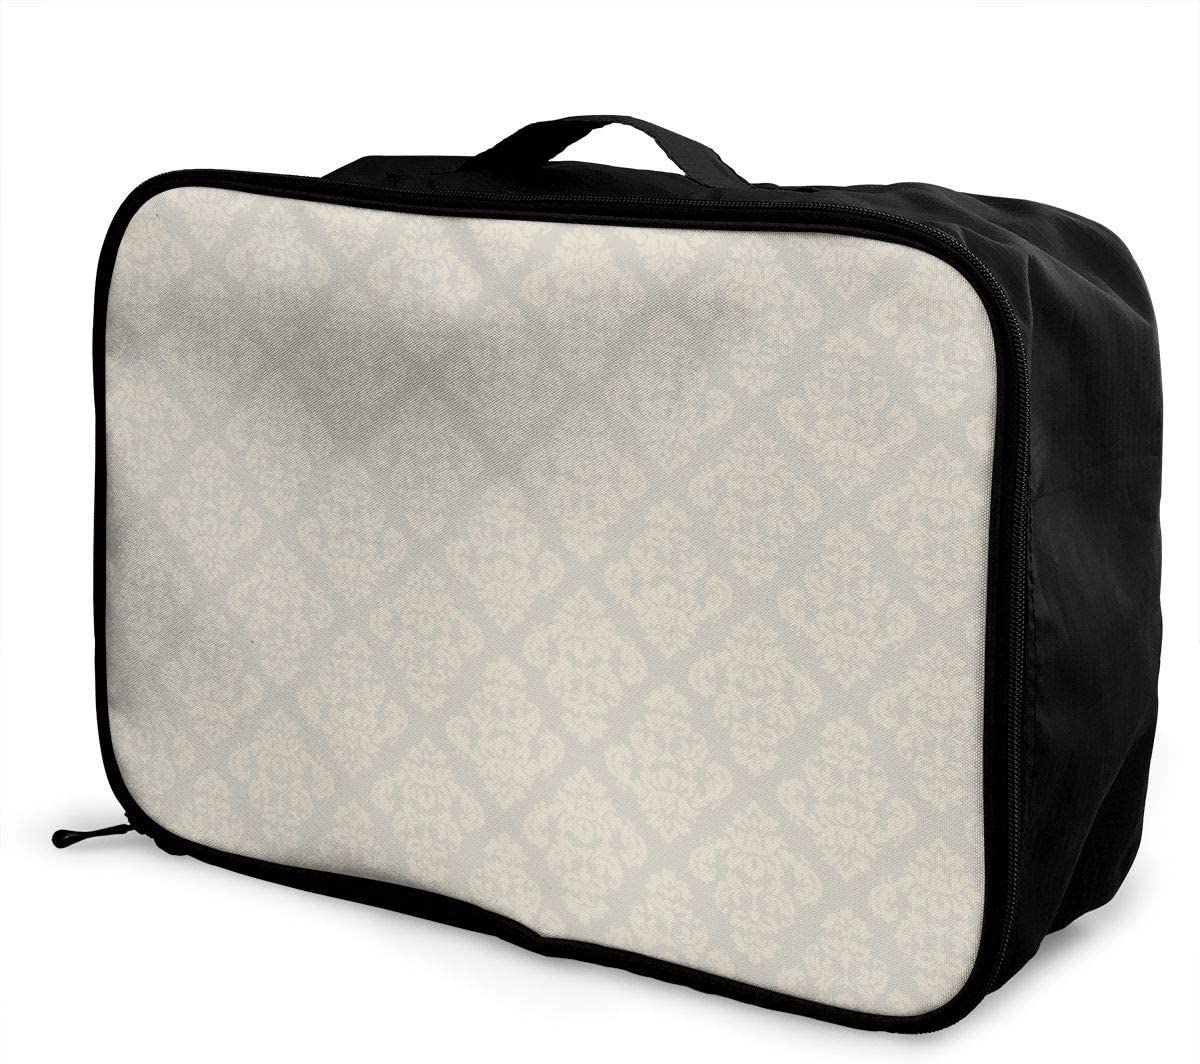 Petoskey Stone Travel Carry-on Luggage Weekender Bag Overnight Tote Flight Duffel In Trolley Handle